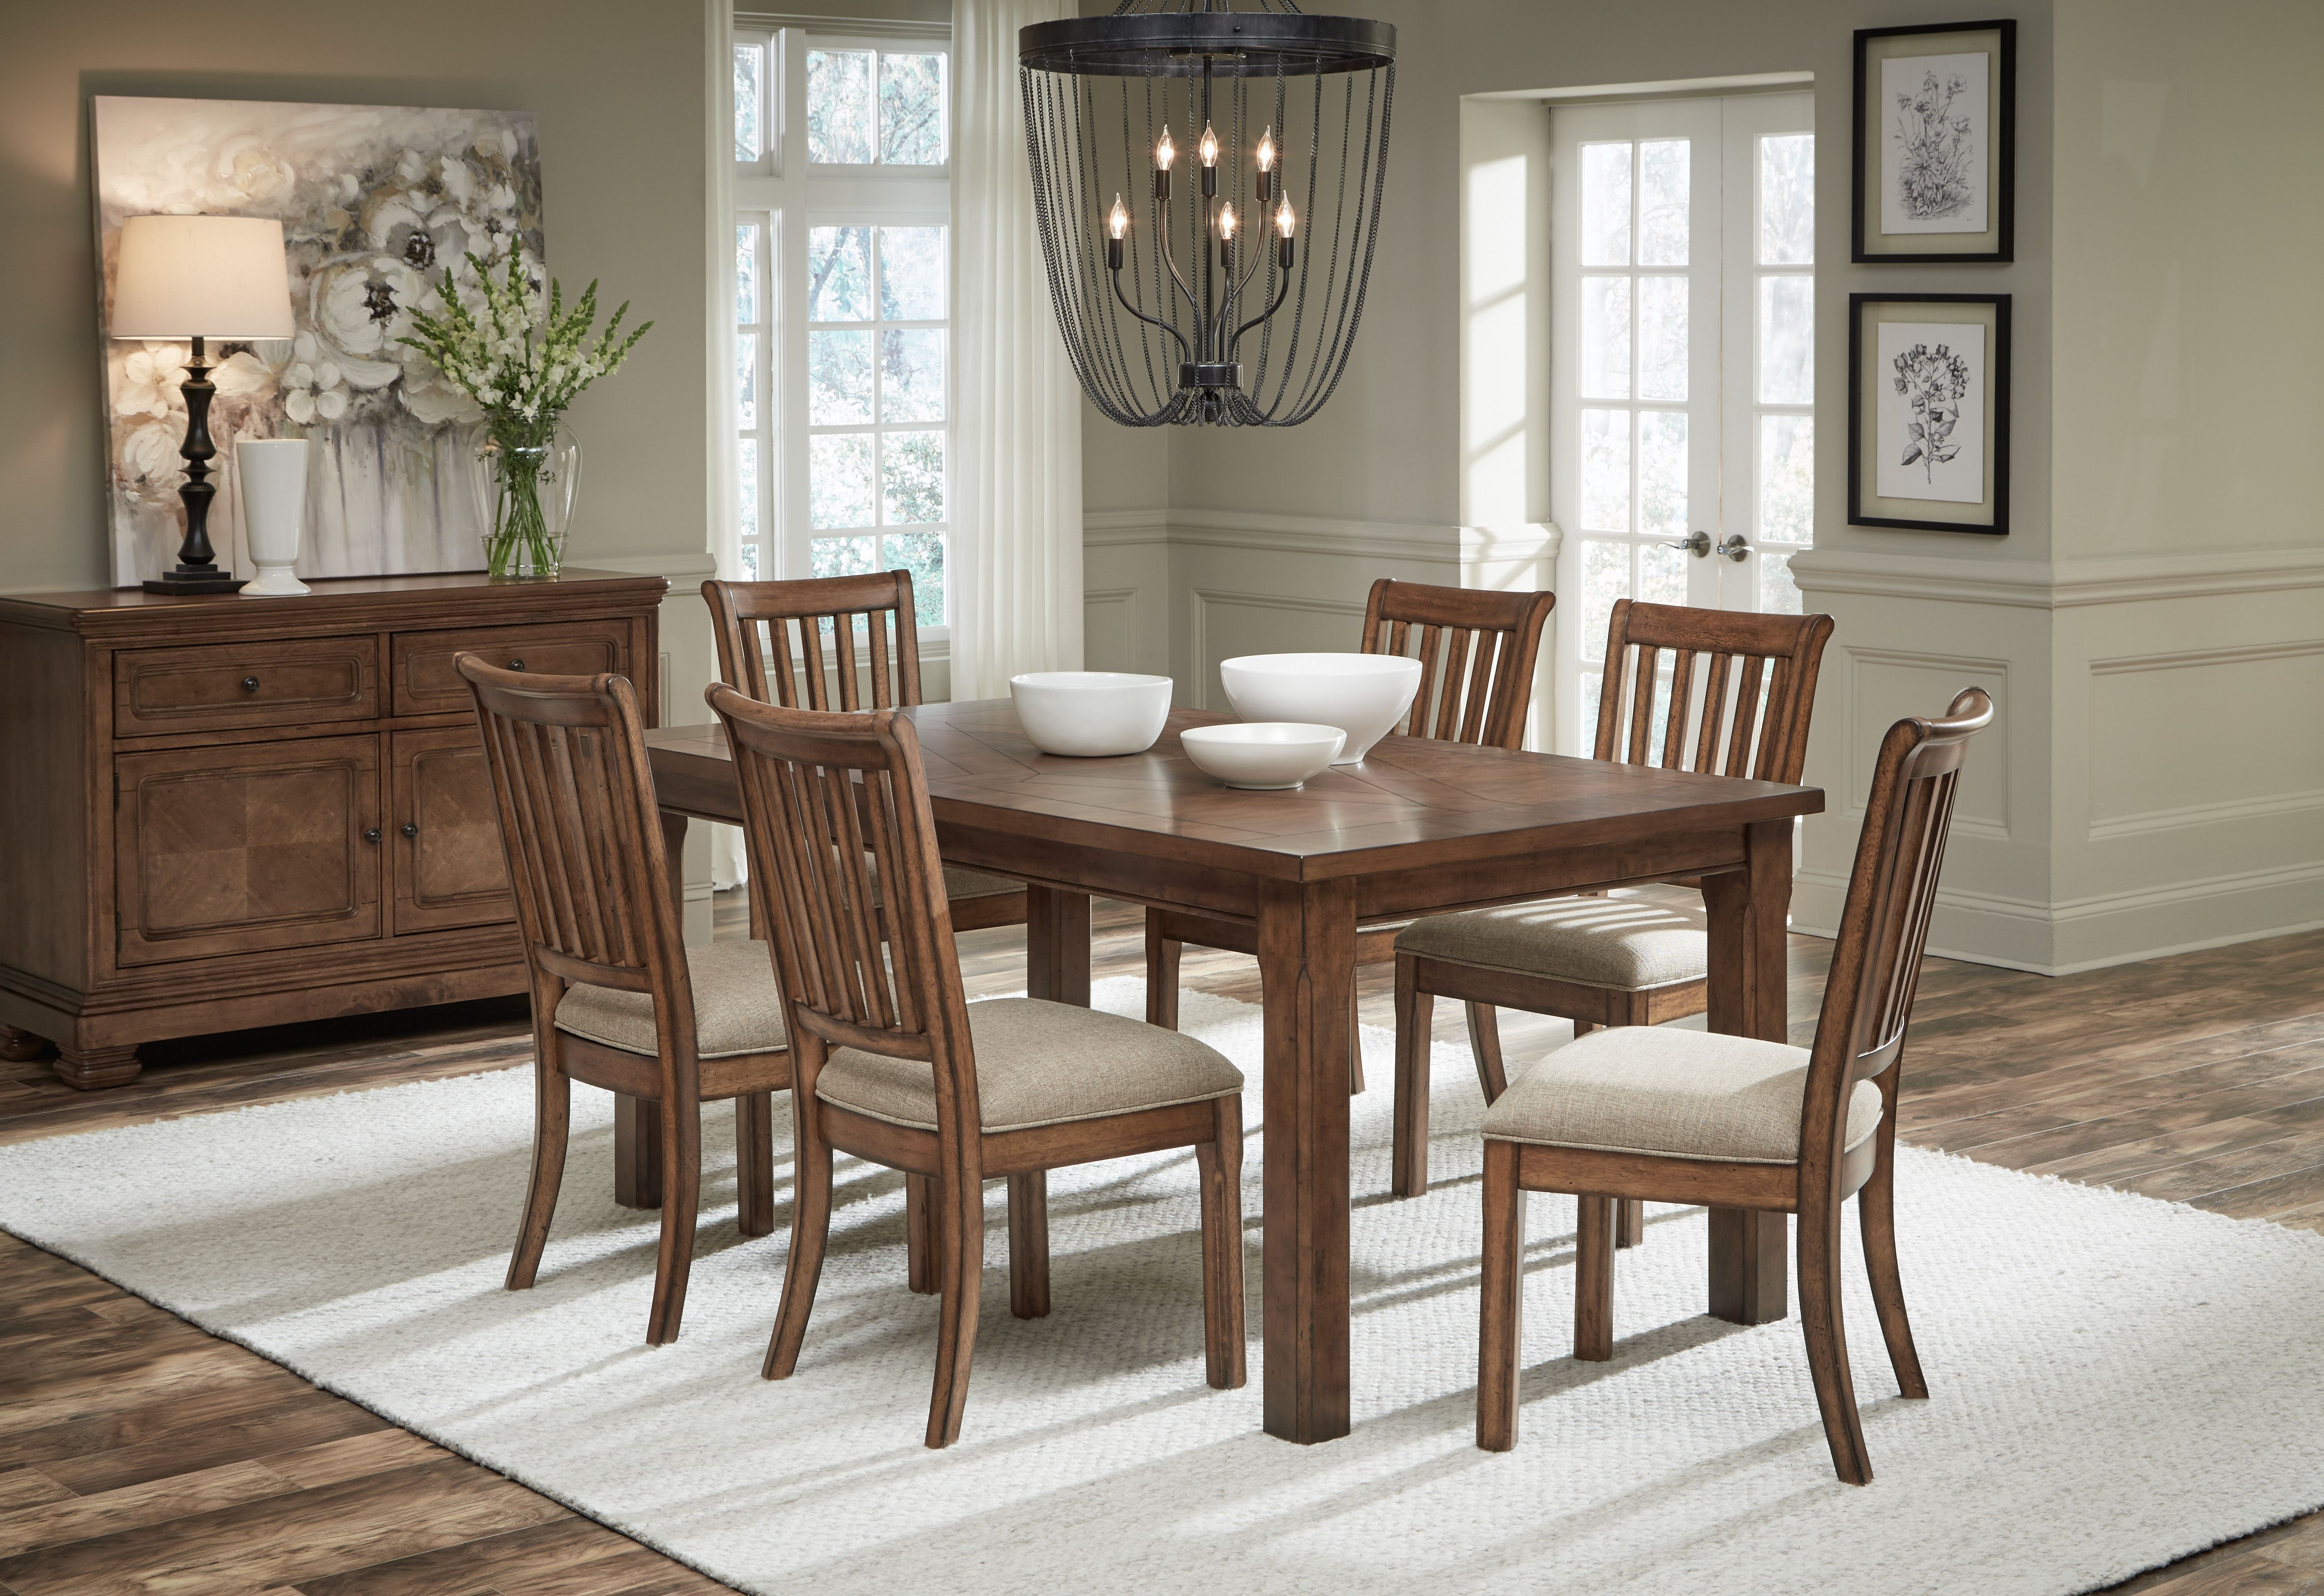 The Oxford Place Dining Collection Legacy Classic Furniture Oxfordplace Legacyclassic Diningroom Diningroomid Furniture Dining Legacy Classic Furniture Dining rooms legacy classic